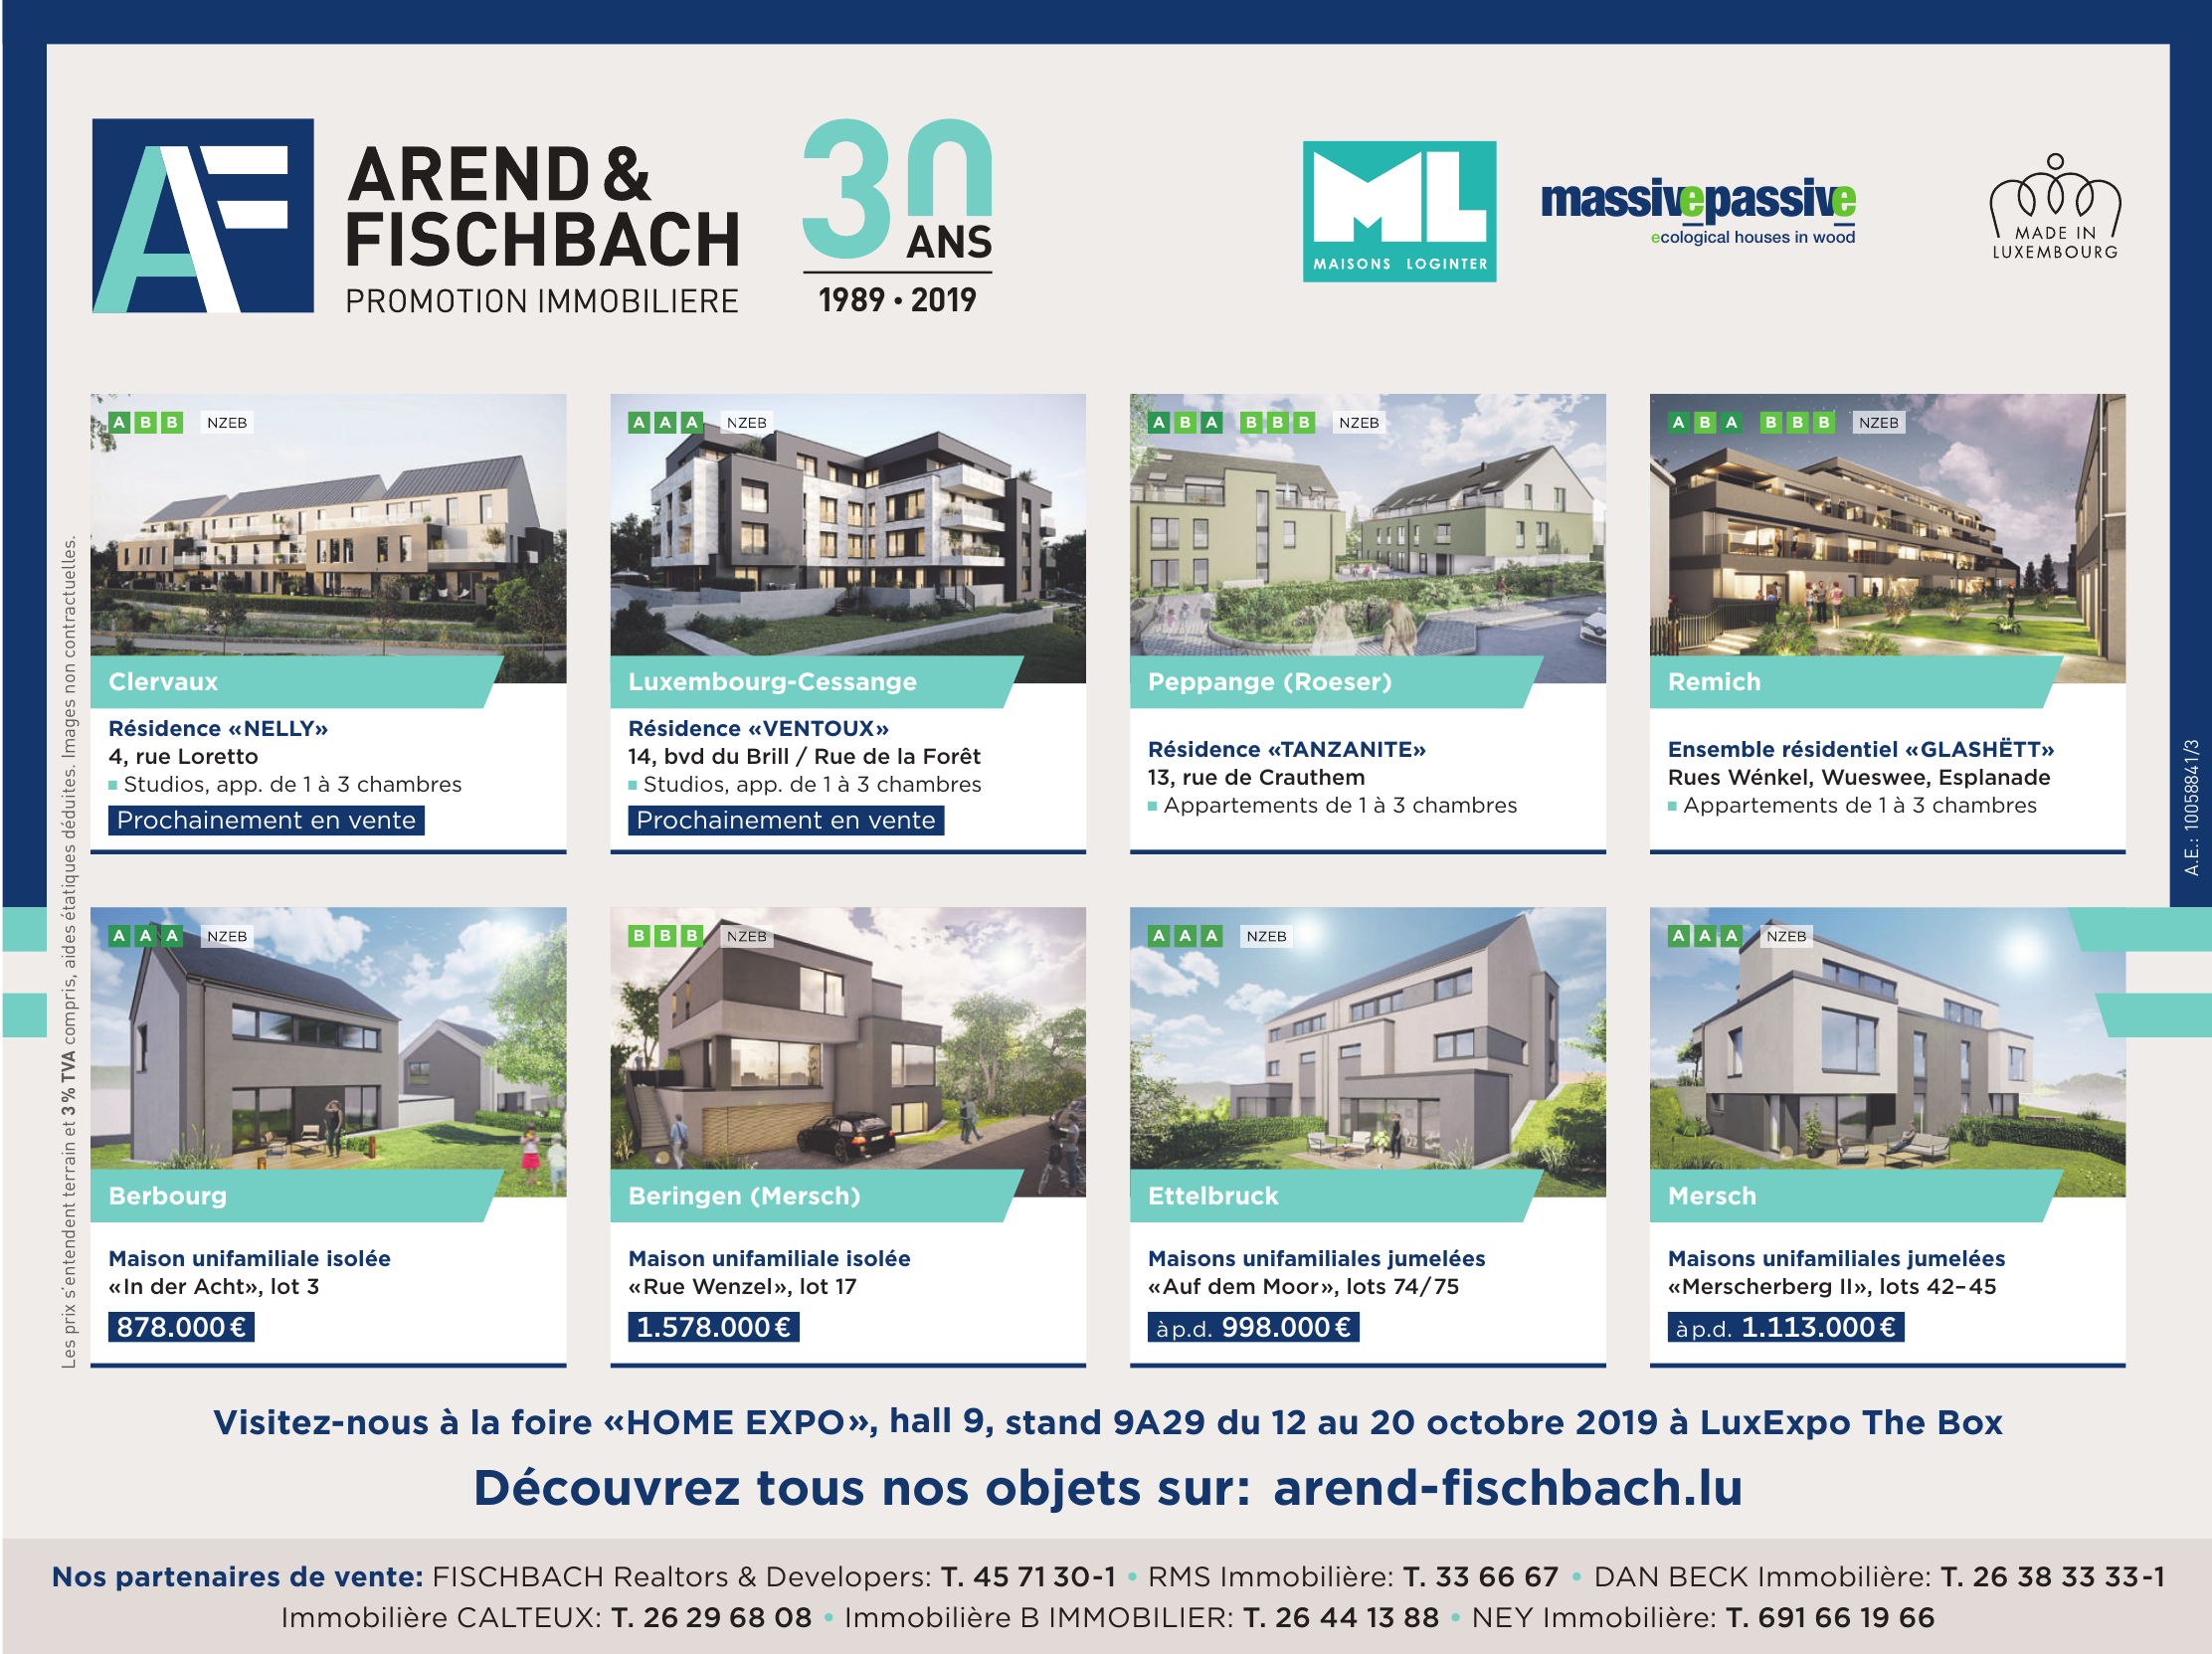 Arend & Fischbach - Promotion Immobiliere